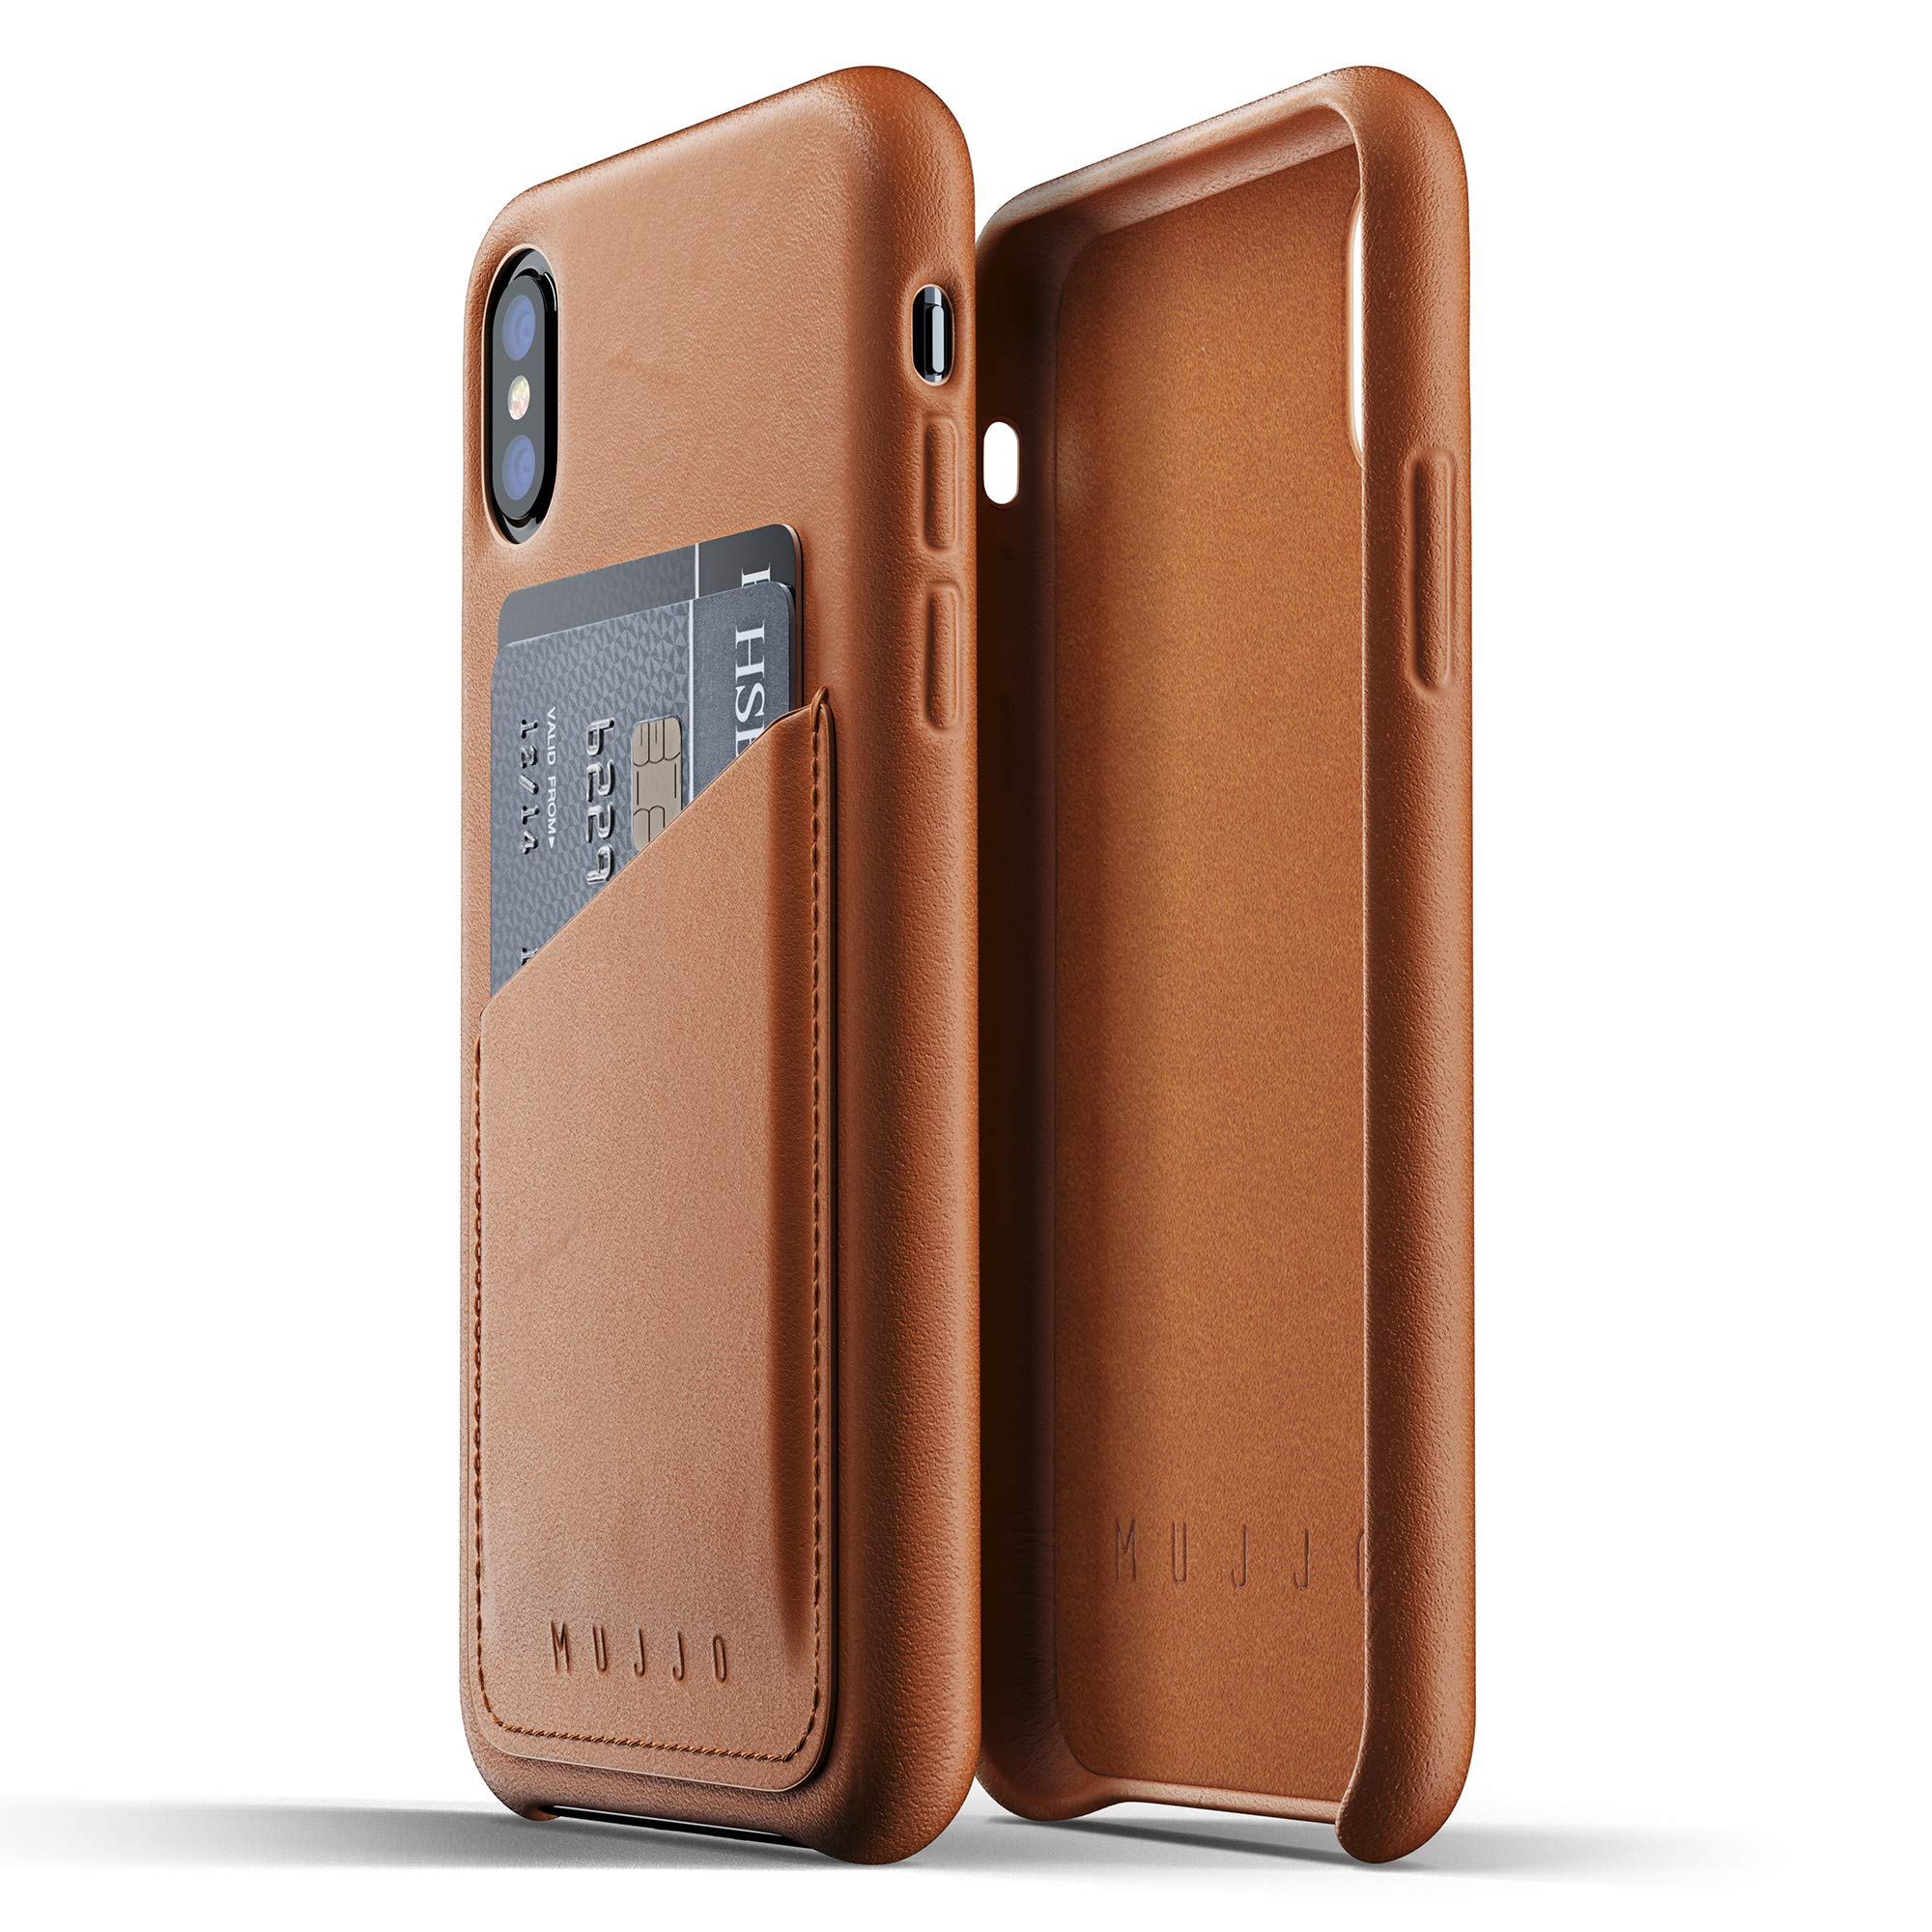 Mujjo Full Leather Wallet Case for iPhone Xs, iPhone X | Premium Genuine Leather, Natural Aging Effect | 2-3 Card Pocket, Wireless Charging (Tan) by Mujjo